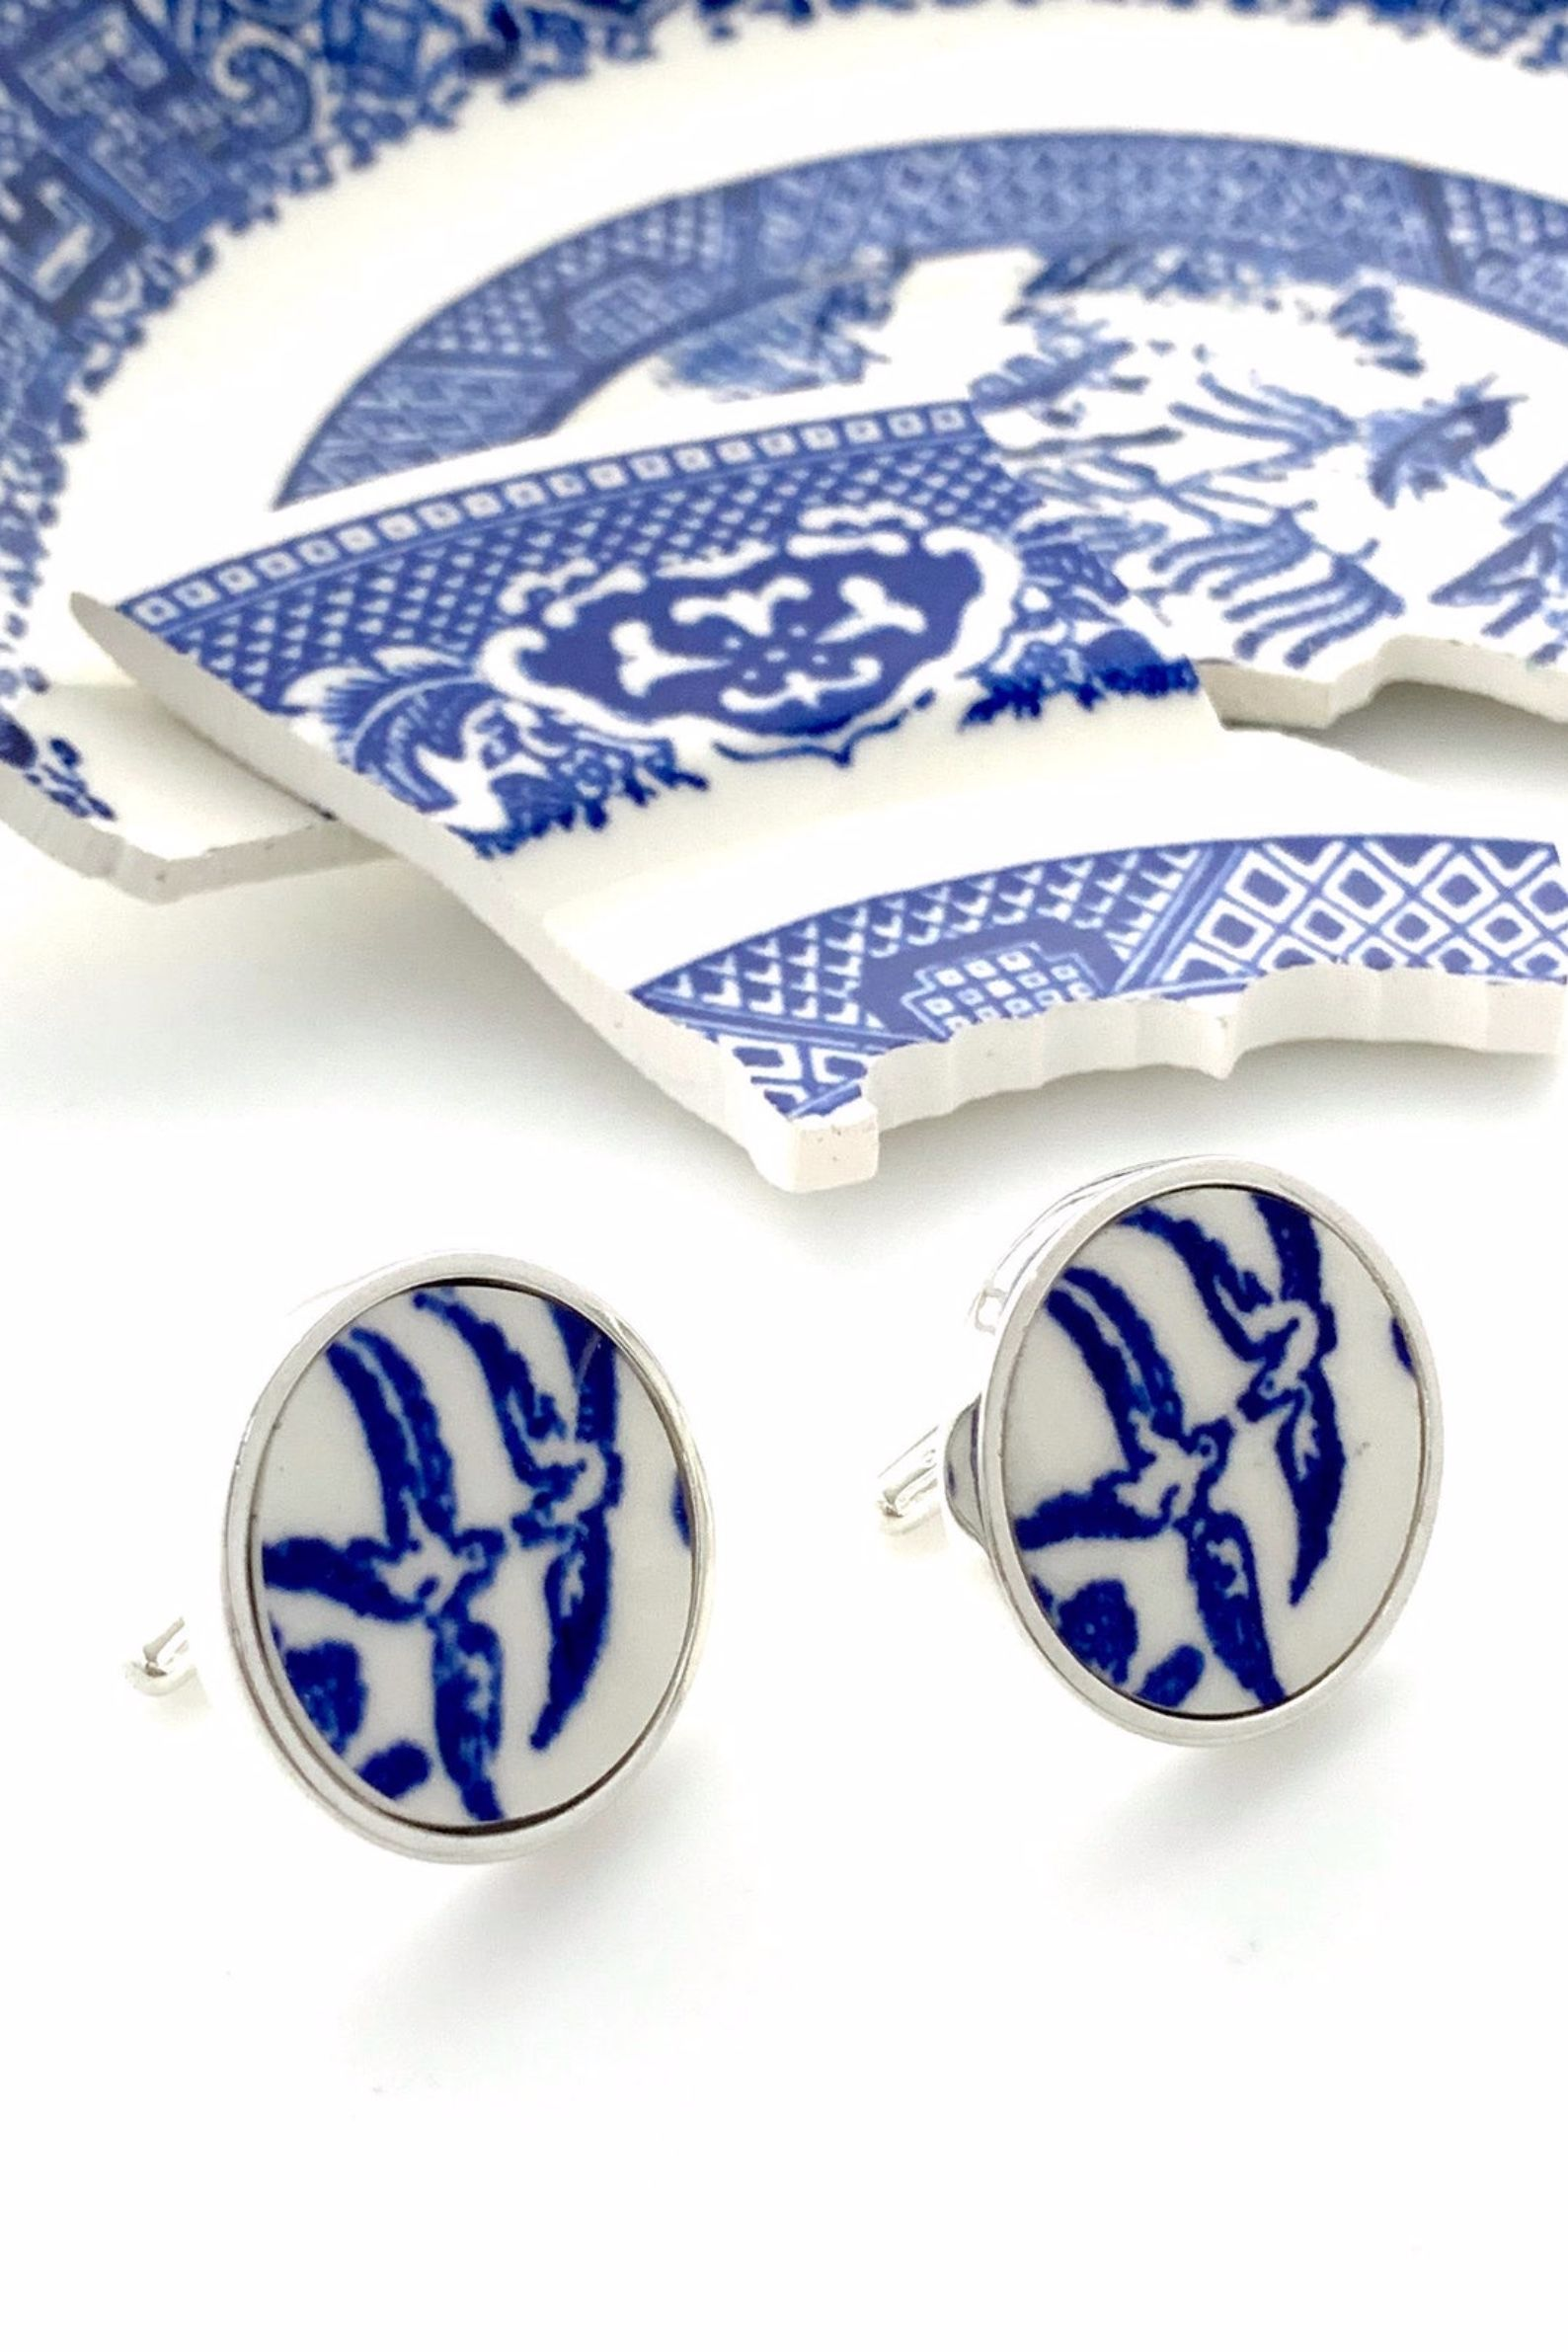 Blue Willow China Cuff Links #20thanniversarywedding